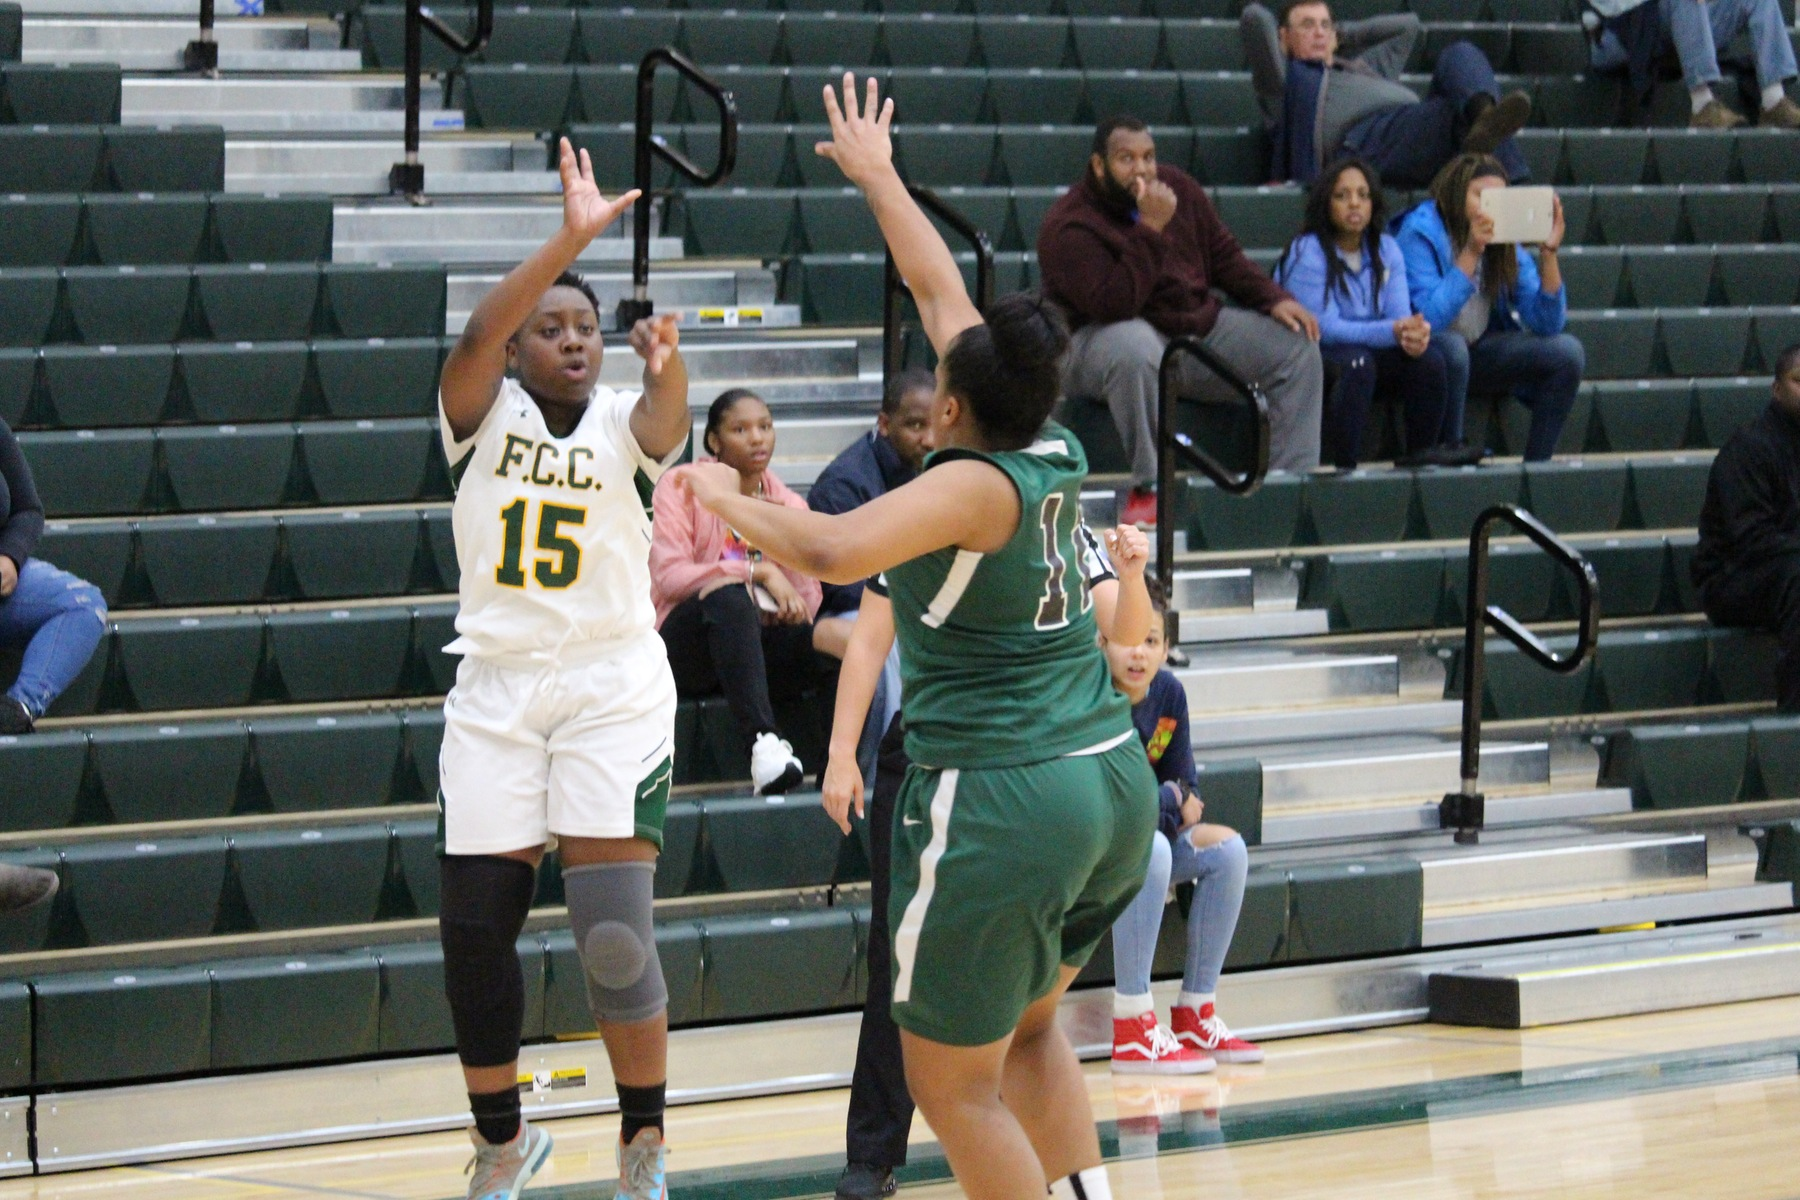 Cougars Cling to Late Lead, Beat CCRI, 81-74